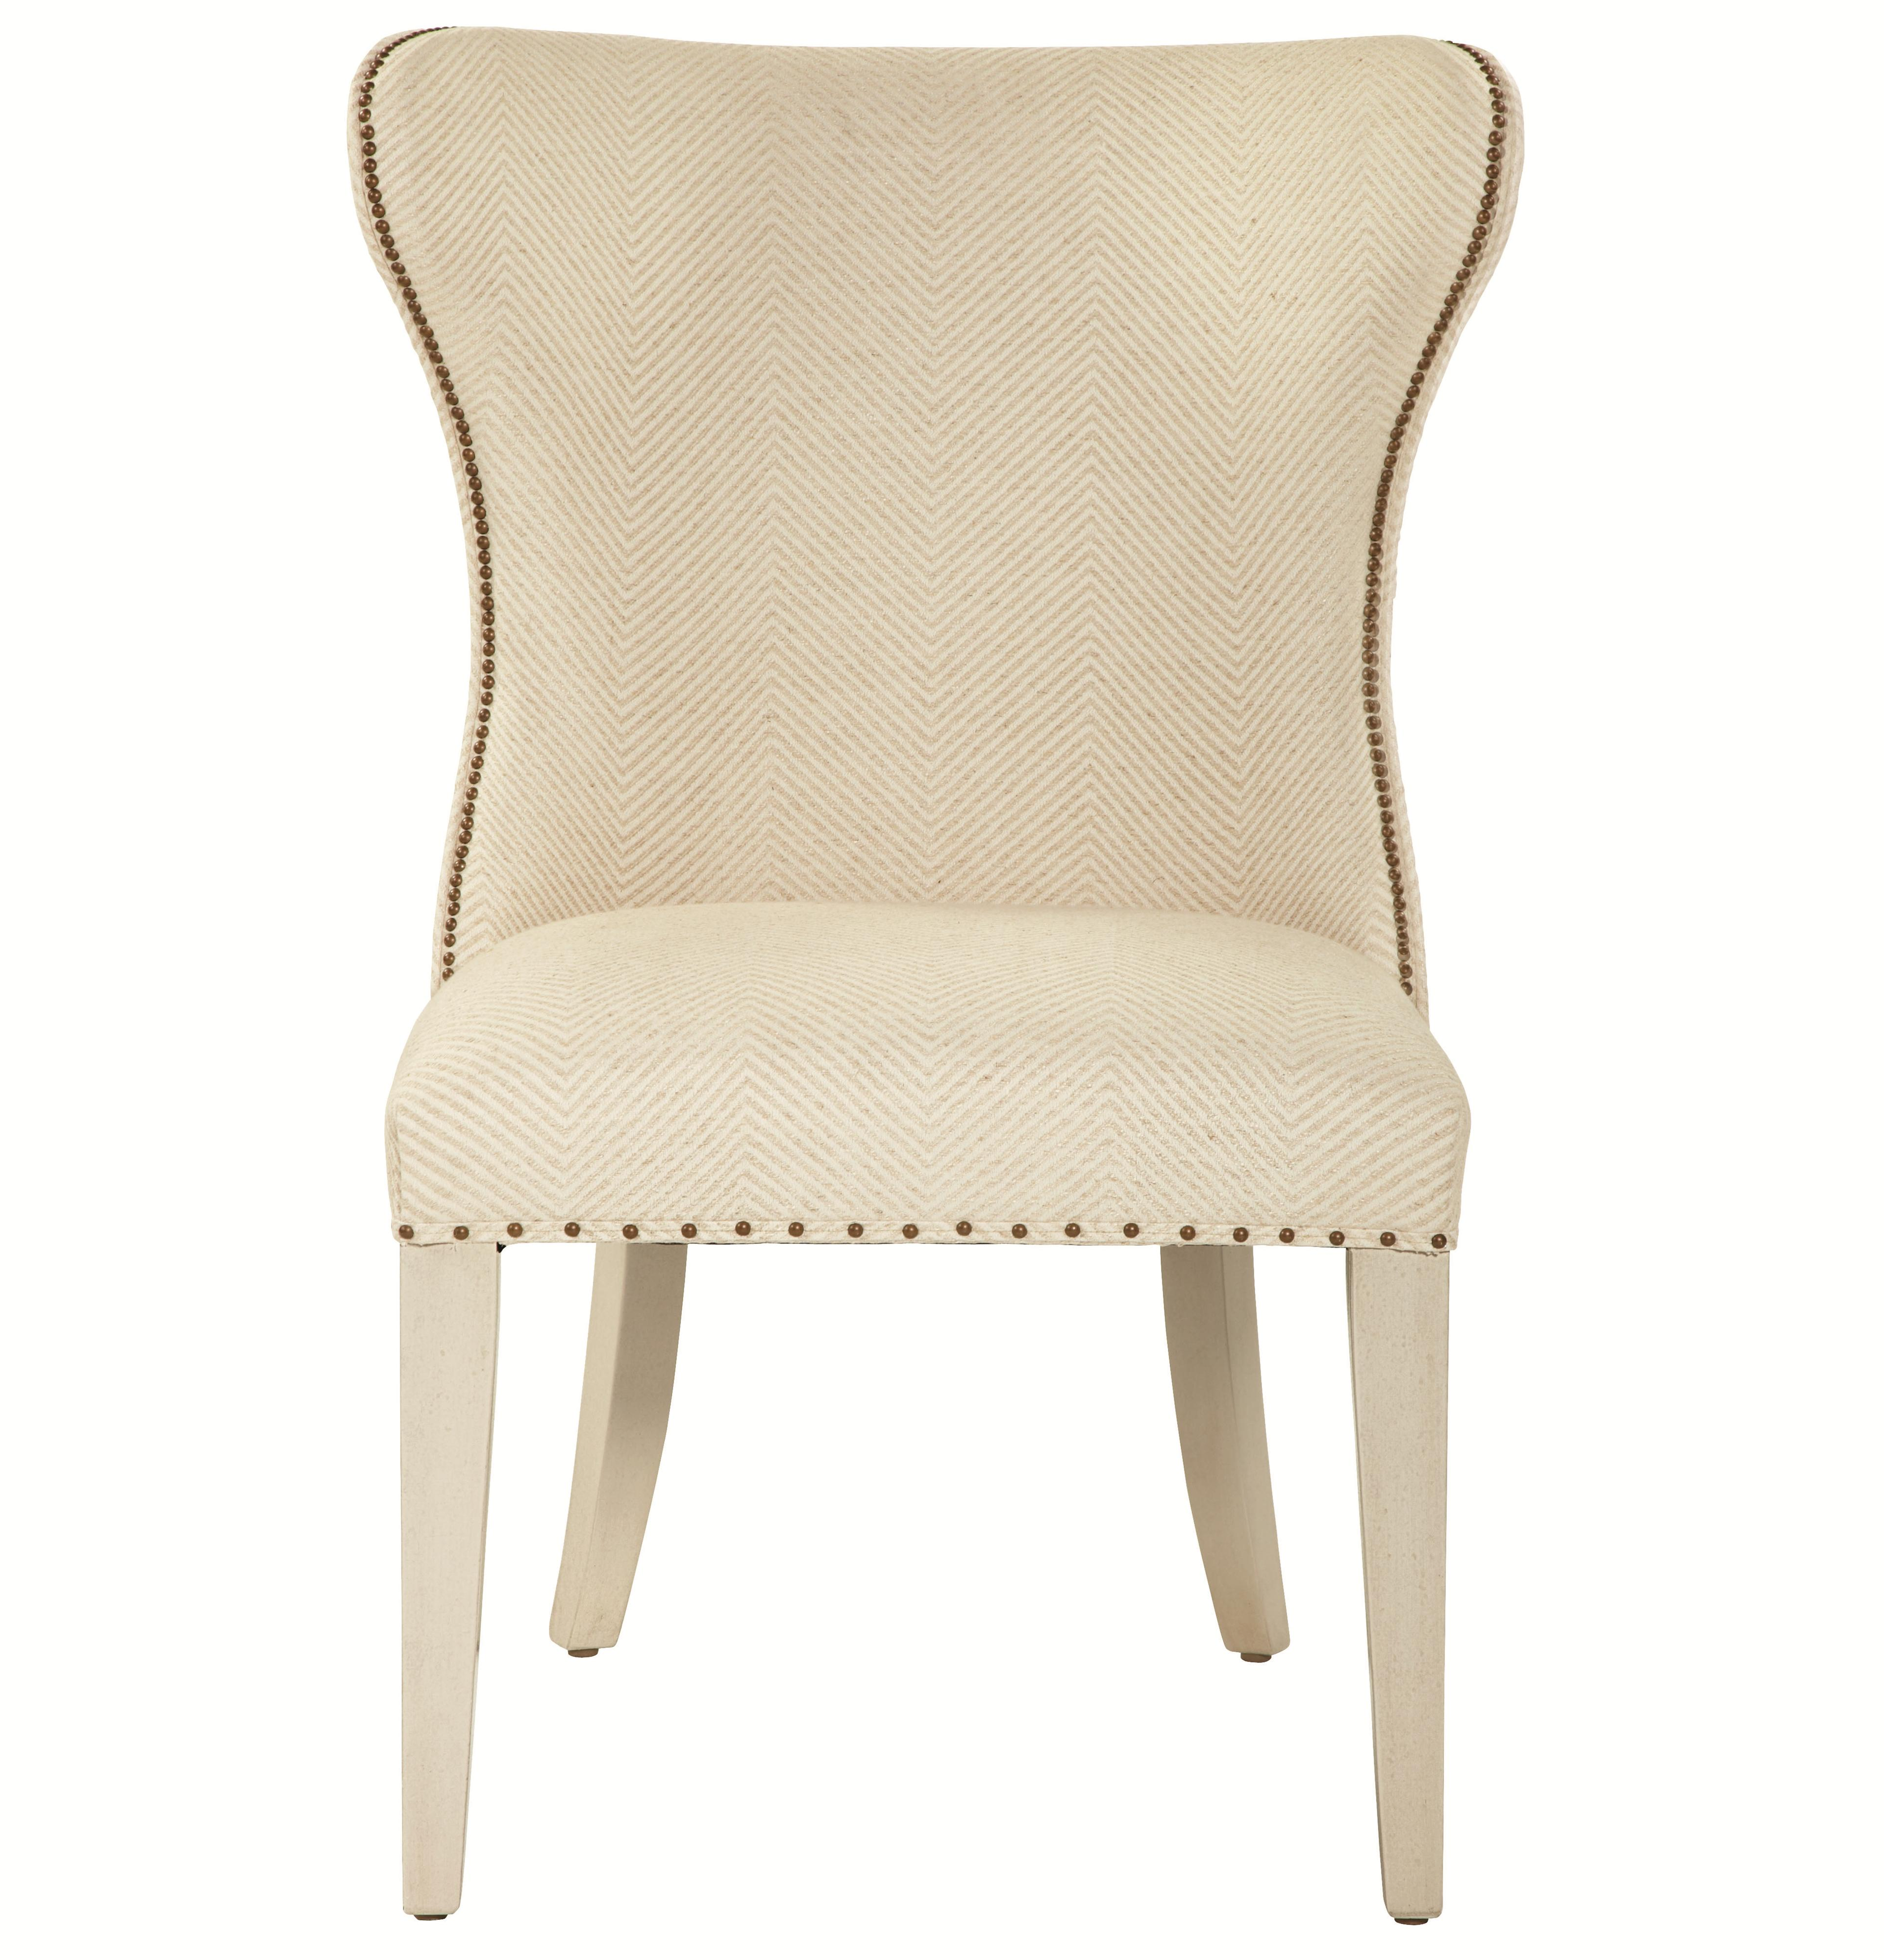 Bernhardt Salon Upholstered Wing Dining Chair - Item Number: 341-541